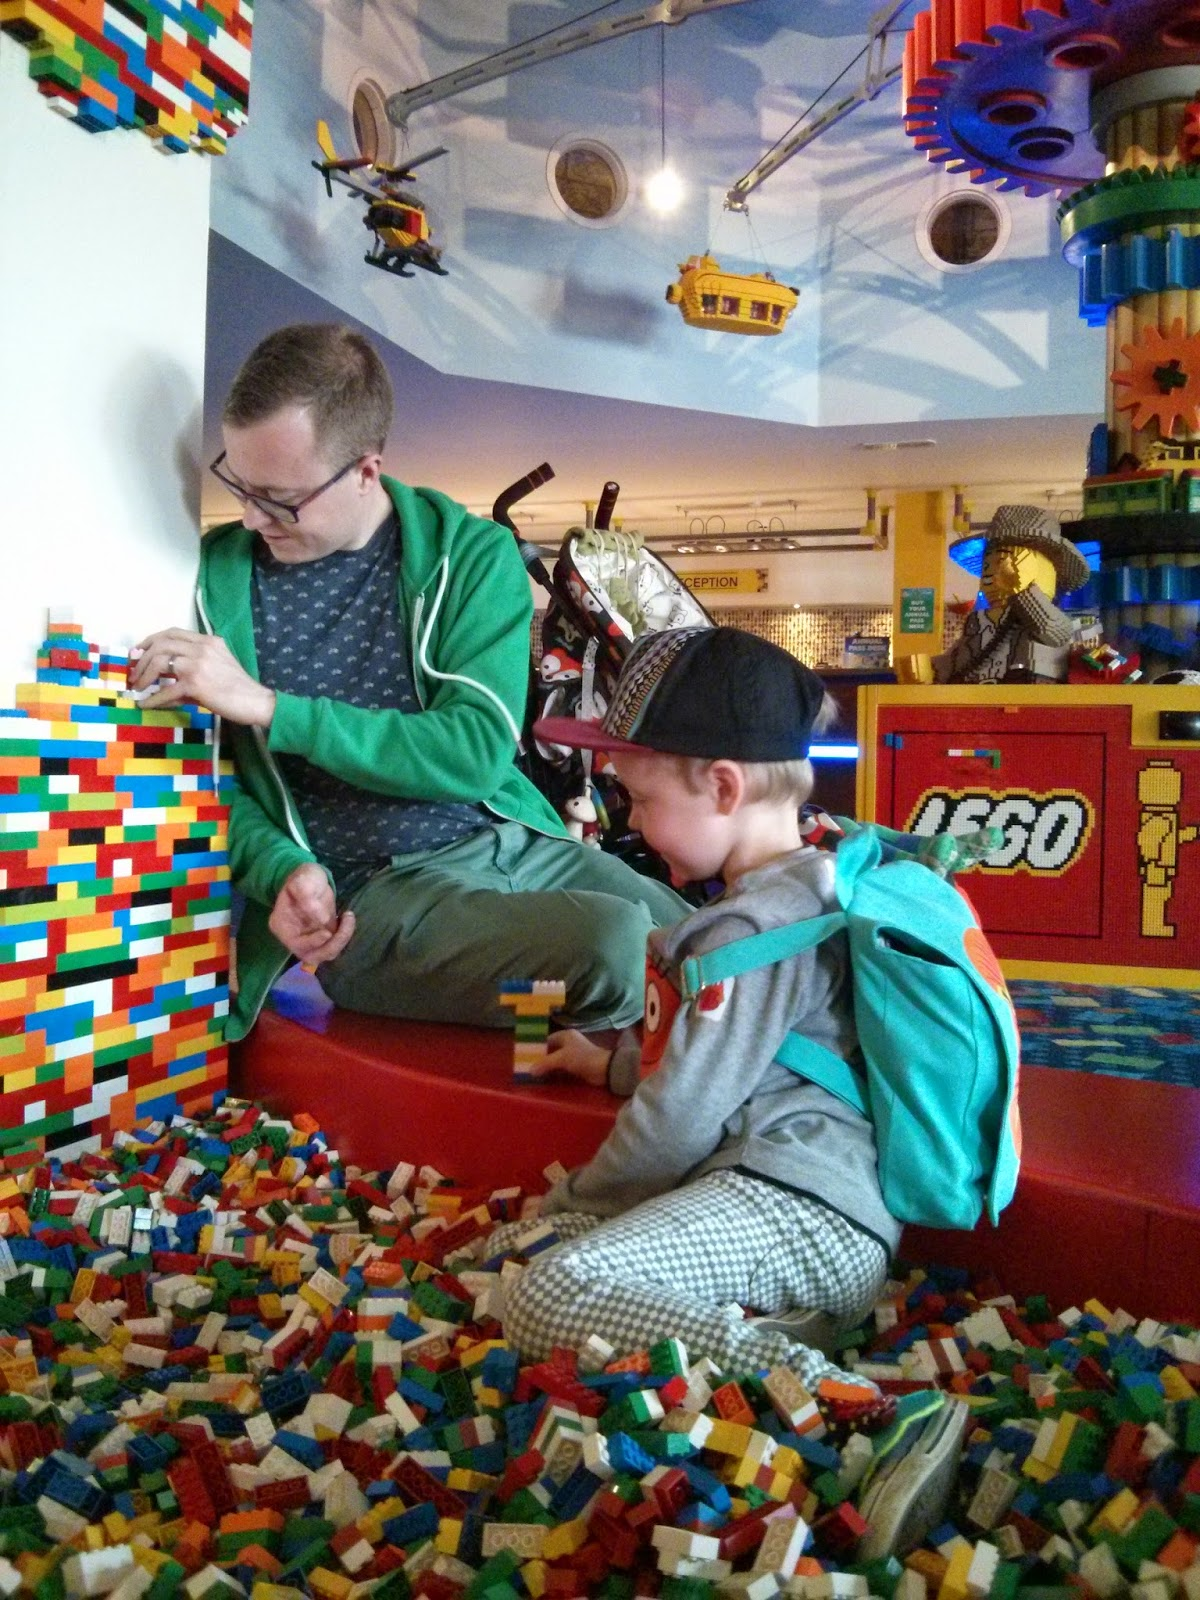 Legoland Hotel Reception - Playing in the Brick Pit